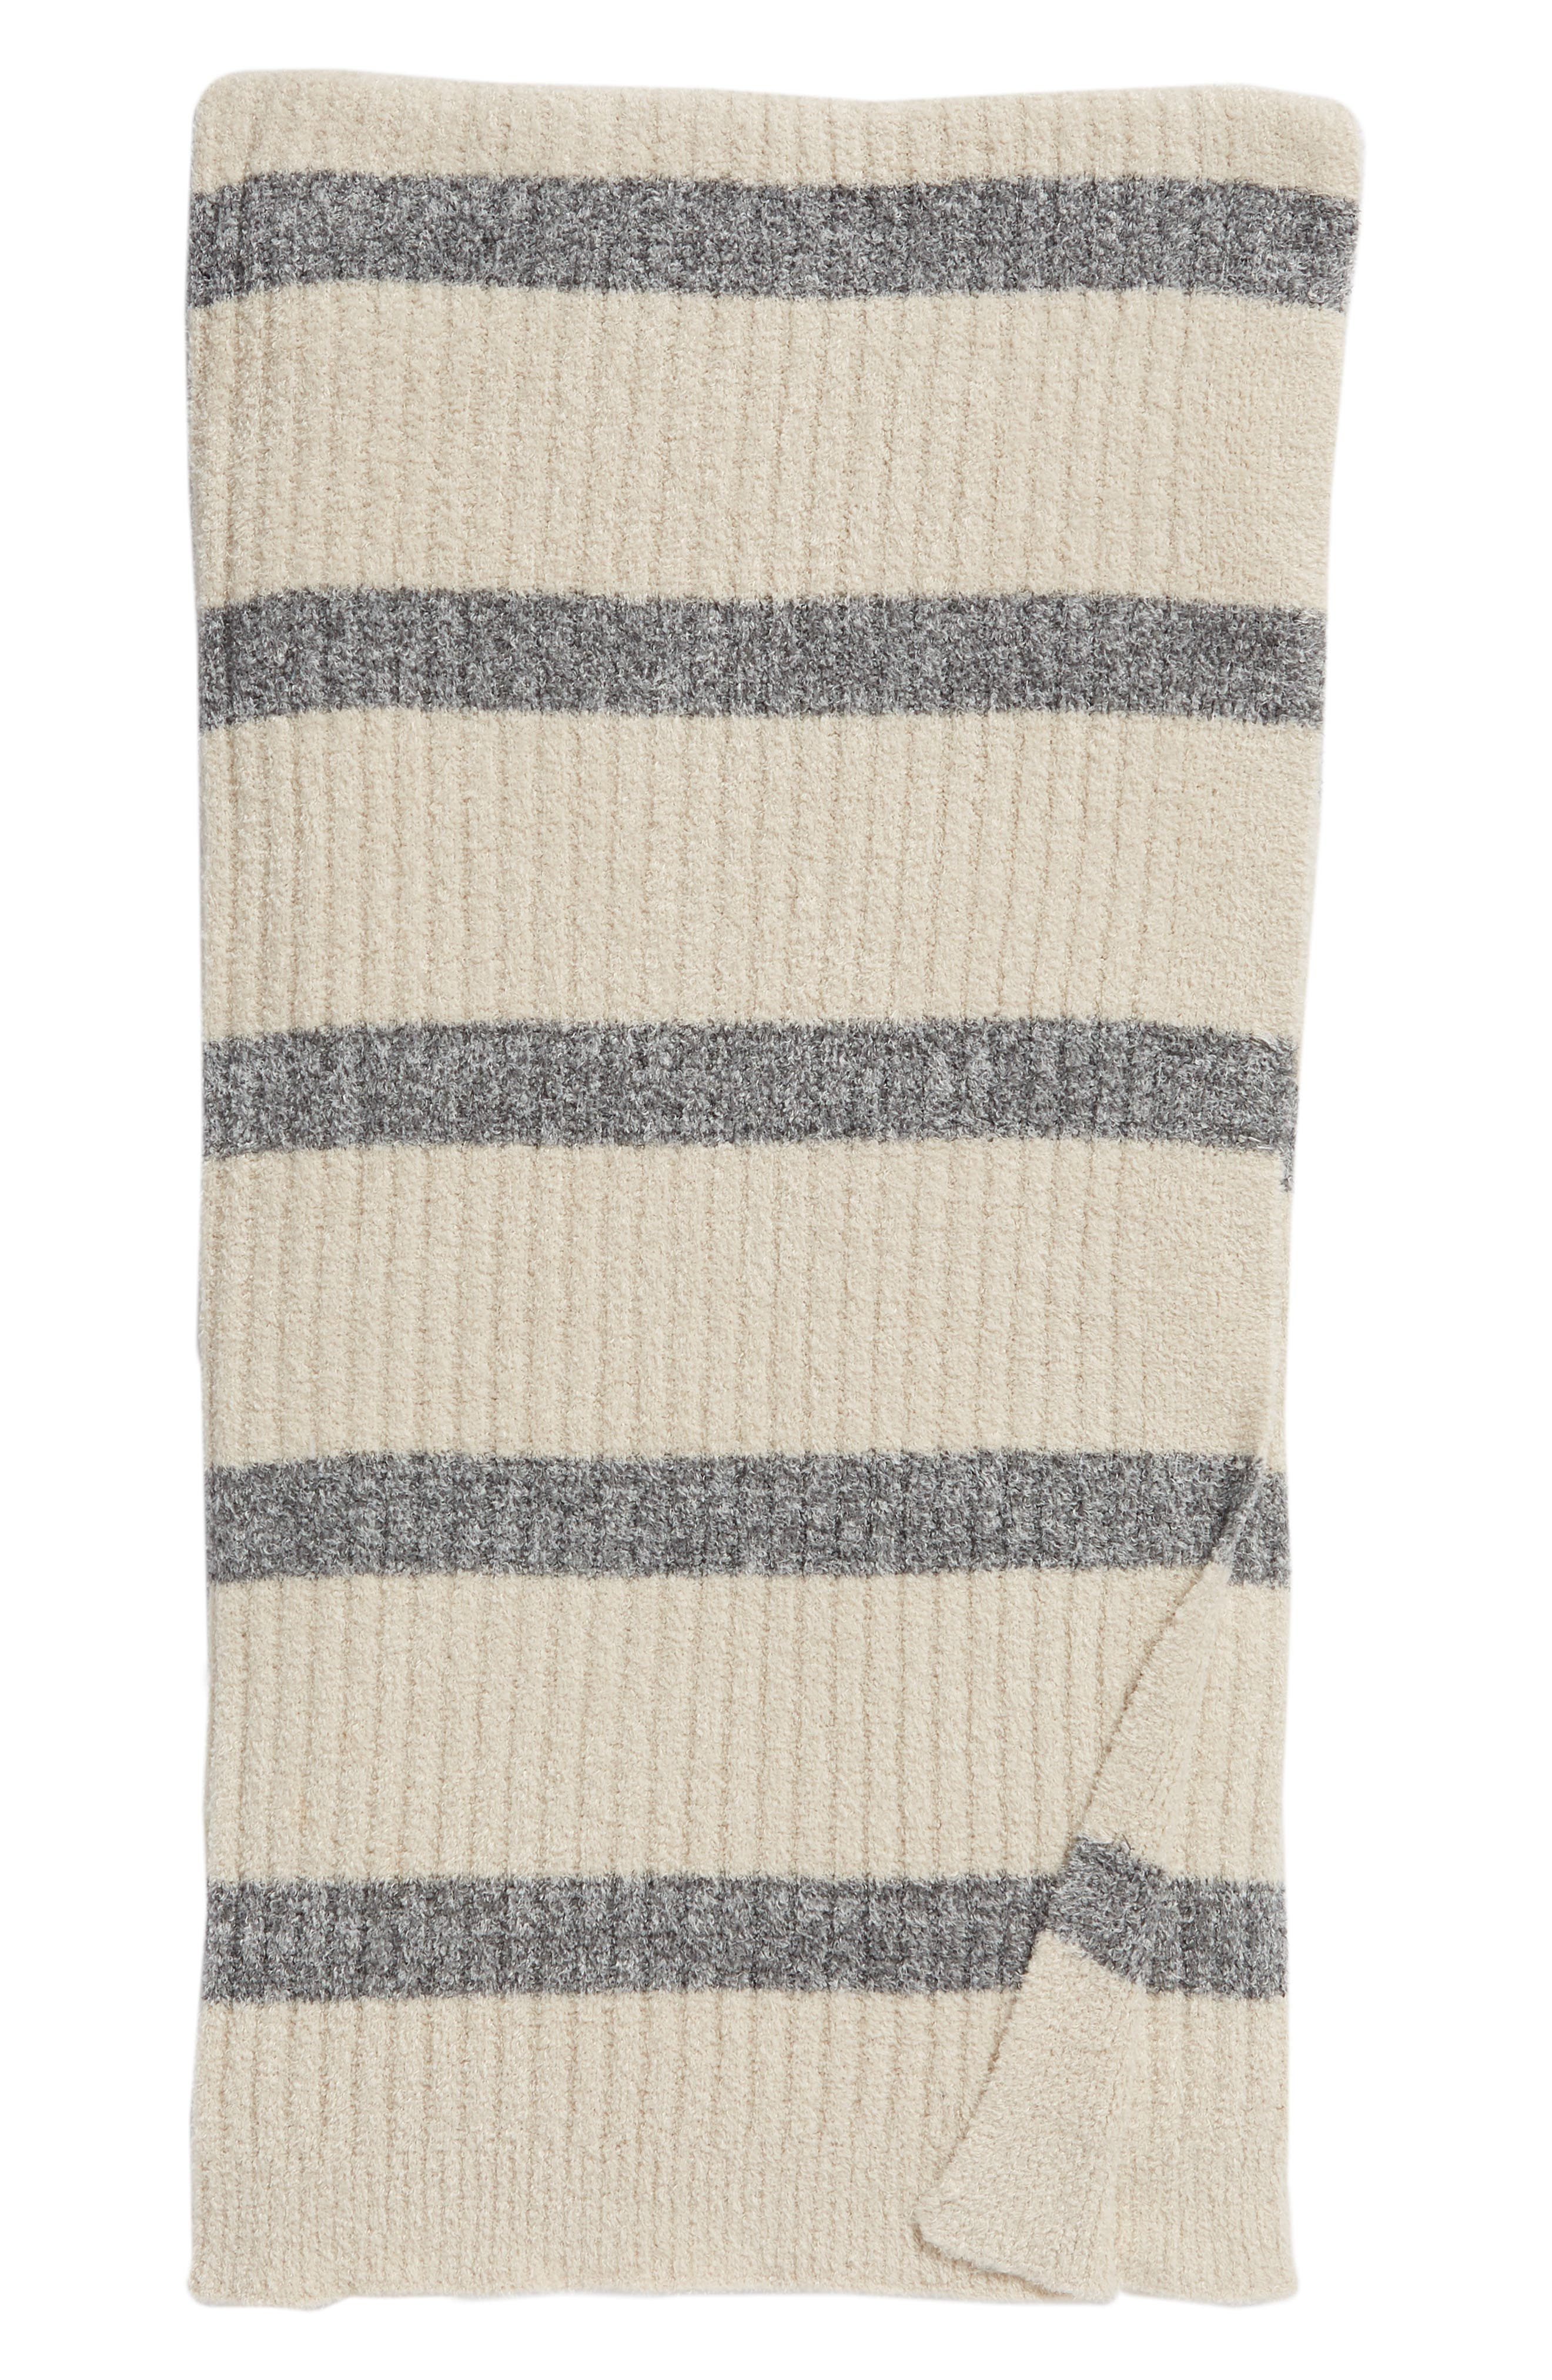 CozyChic Lite<sup>®</sup> Stripe Throw Blanket,                             Main thumbnail 1, color,                             BISQUE/ GRAPHITE